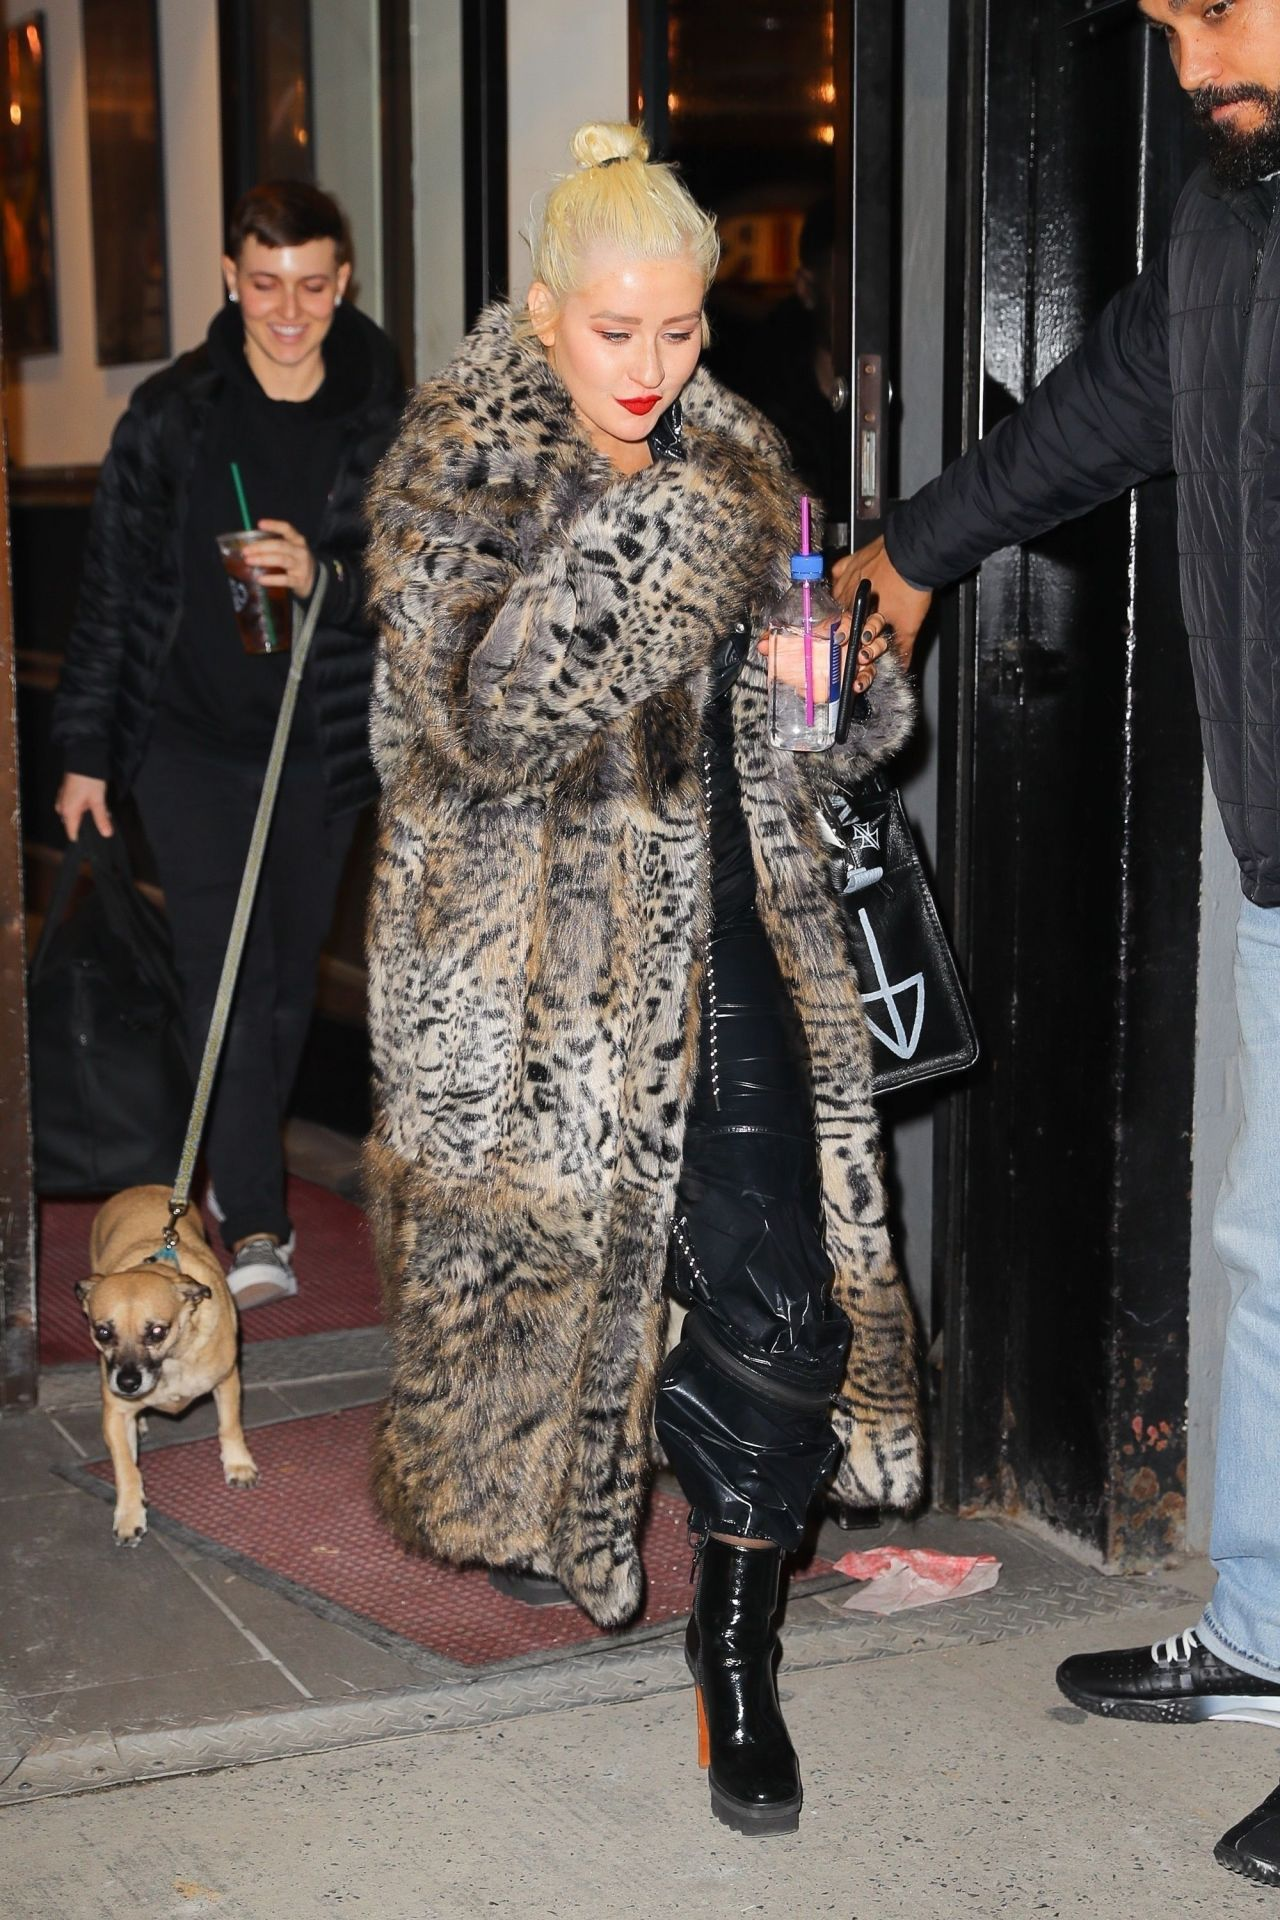 christina aguilera exits a nye rehearsal in nyc 12 30 2018. Black Bedroom Furniture Sets. Home Design Ideas